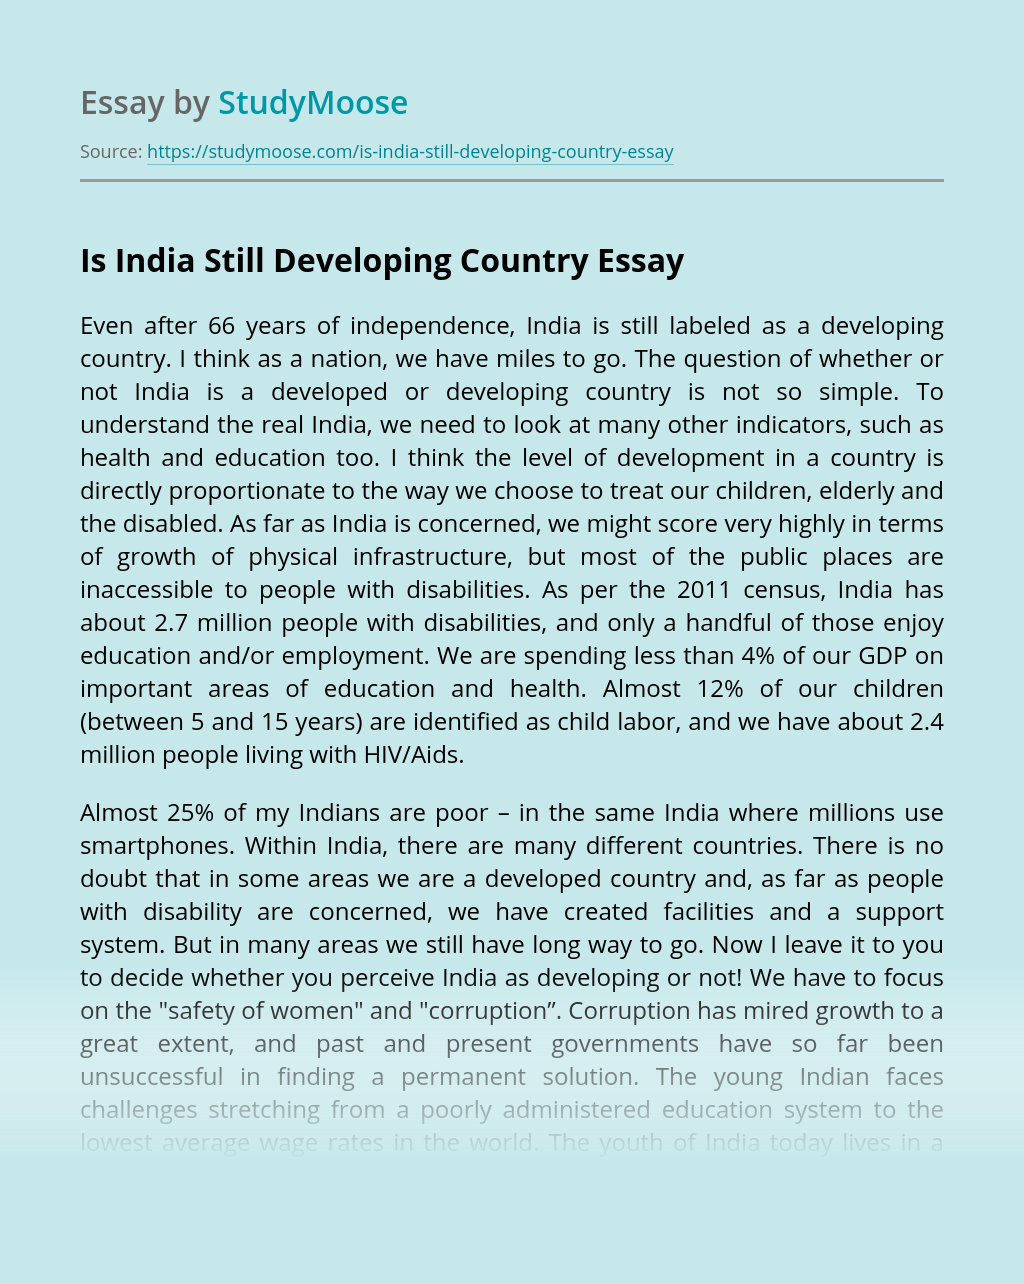 Is India Still Developing Country